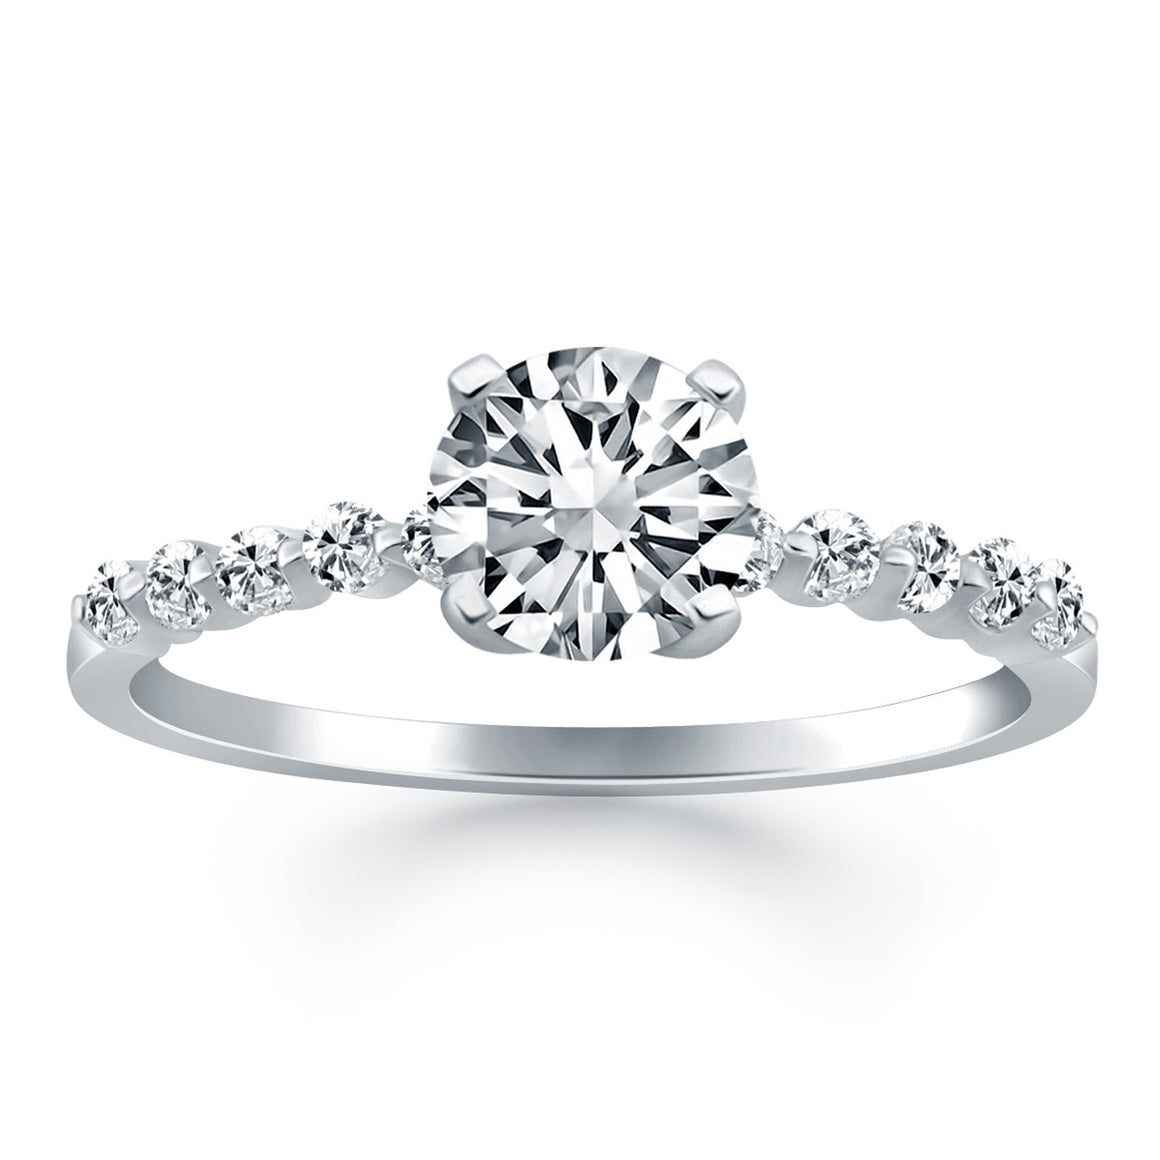 14k White Gold Diamond Engagement Ring with Shared Prong Diamond Accents